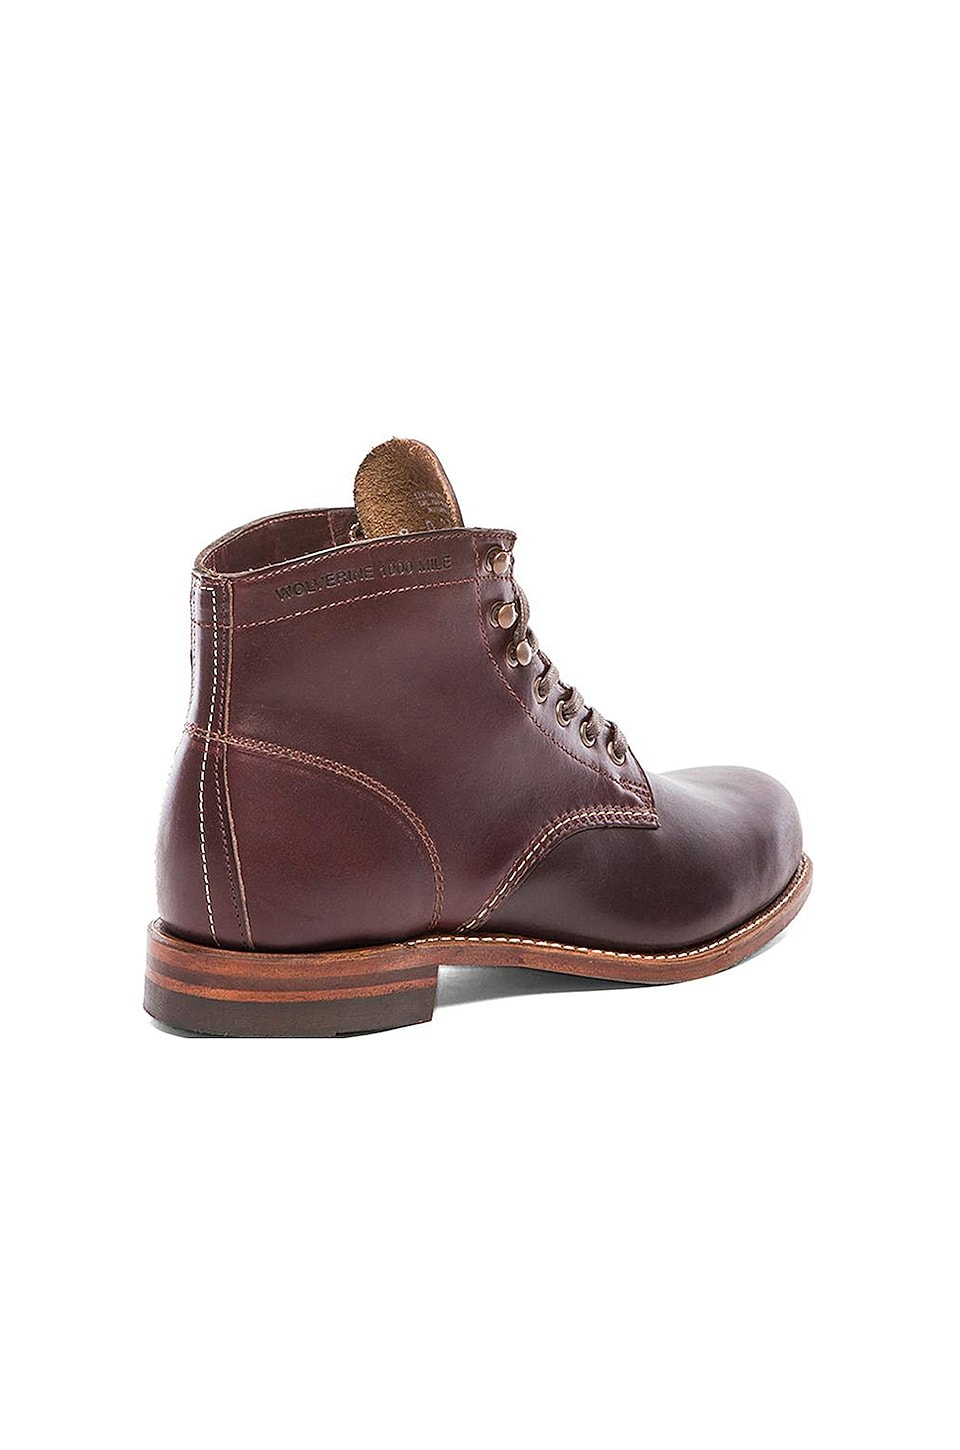 Wolverine 1000 Mile Original Boot in Cordovan No.8